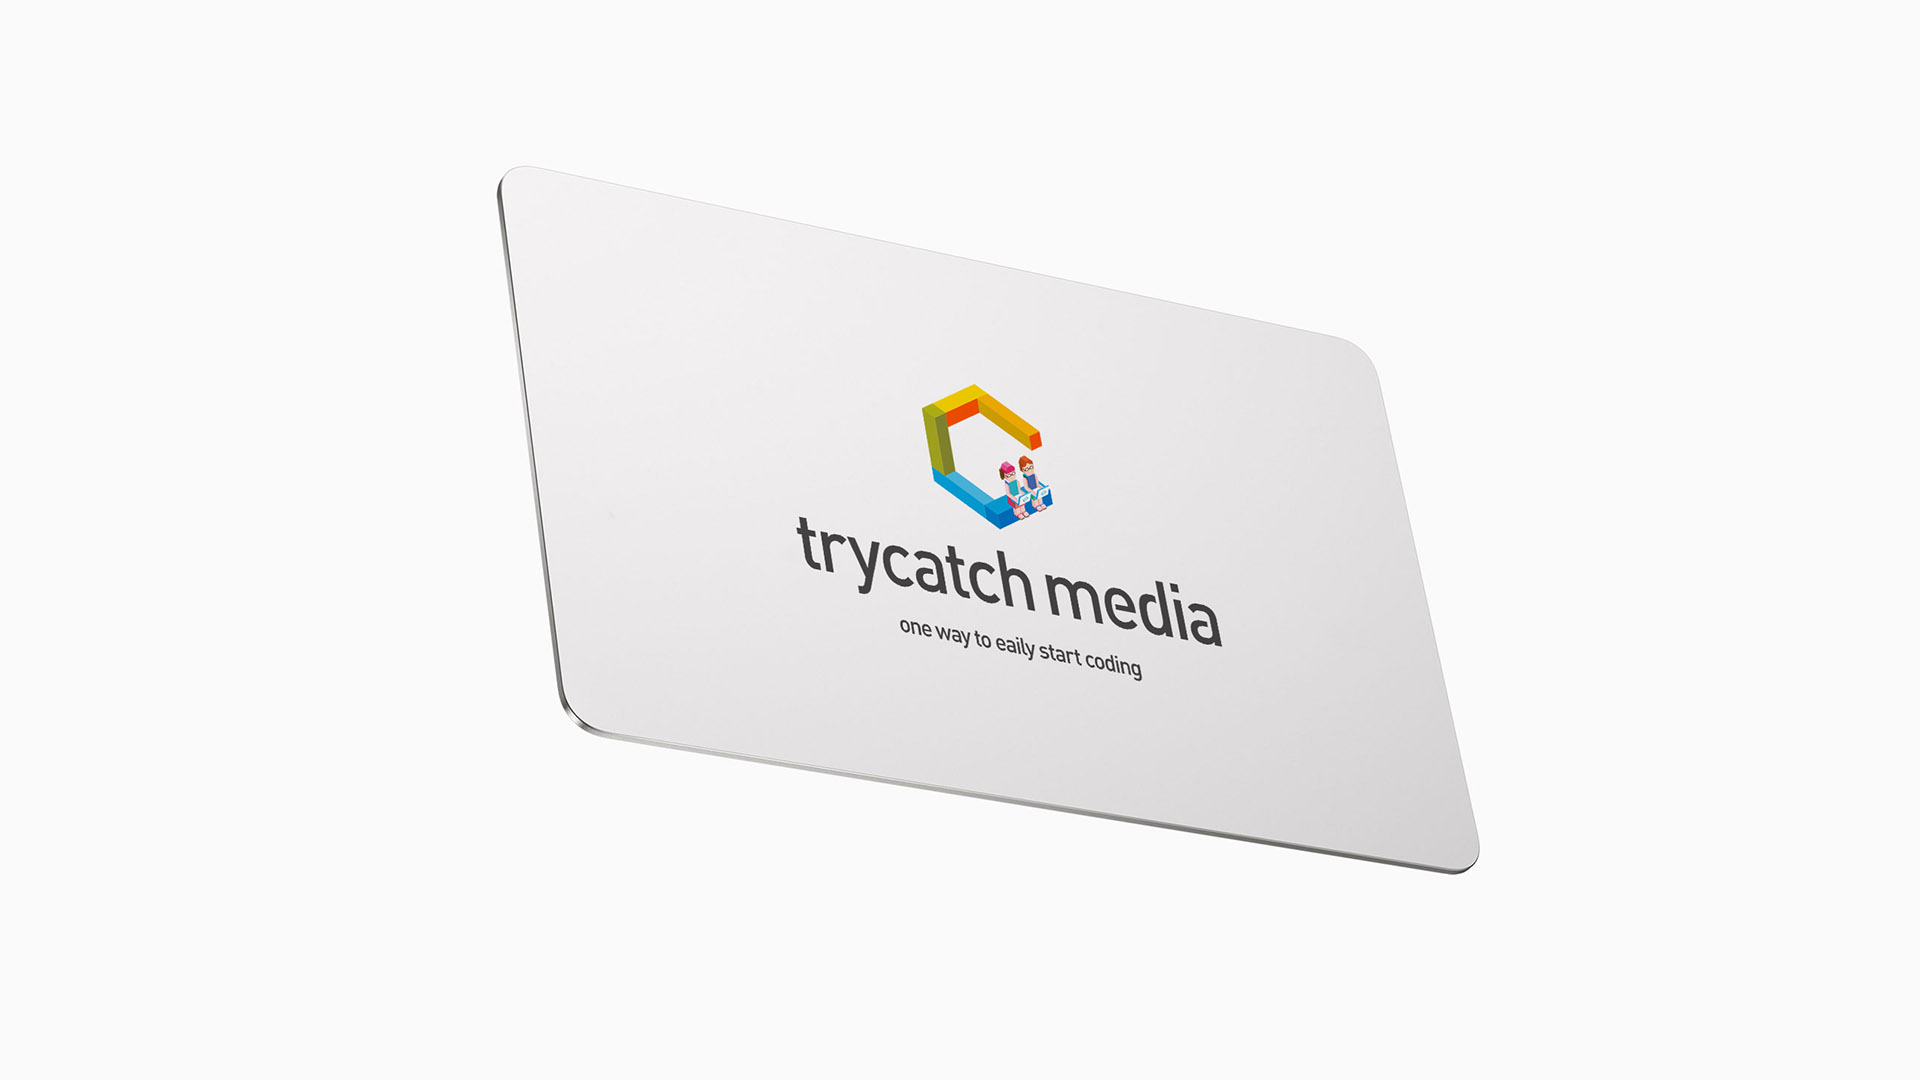 One way to easily start Coding, Trycatch Media!